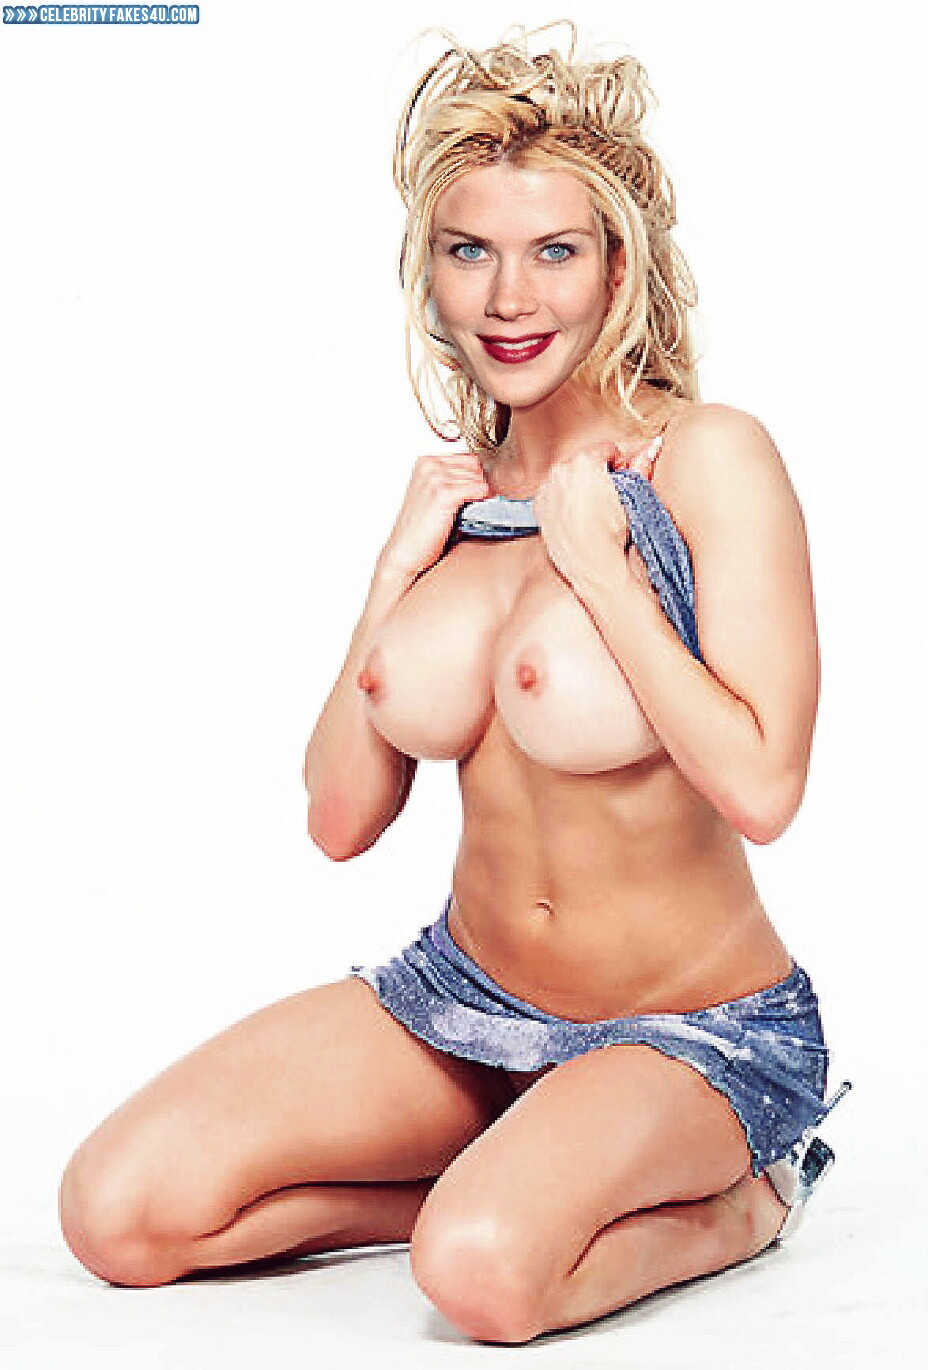 Nude photos allison sweeney